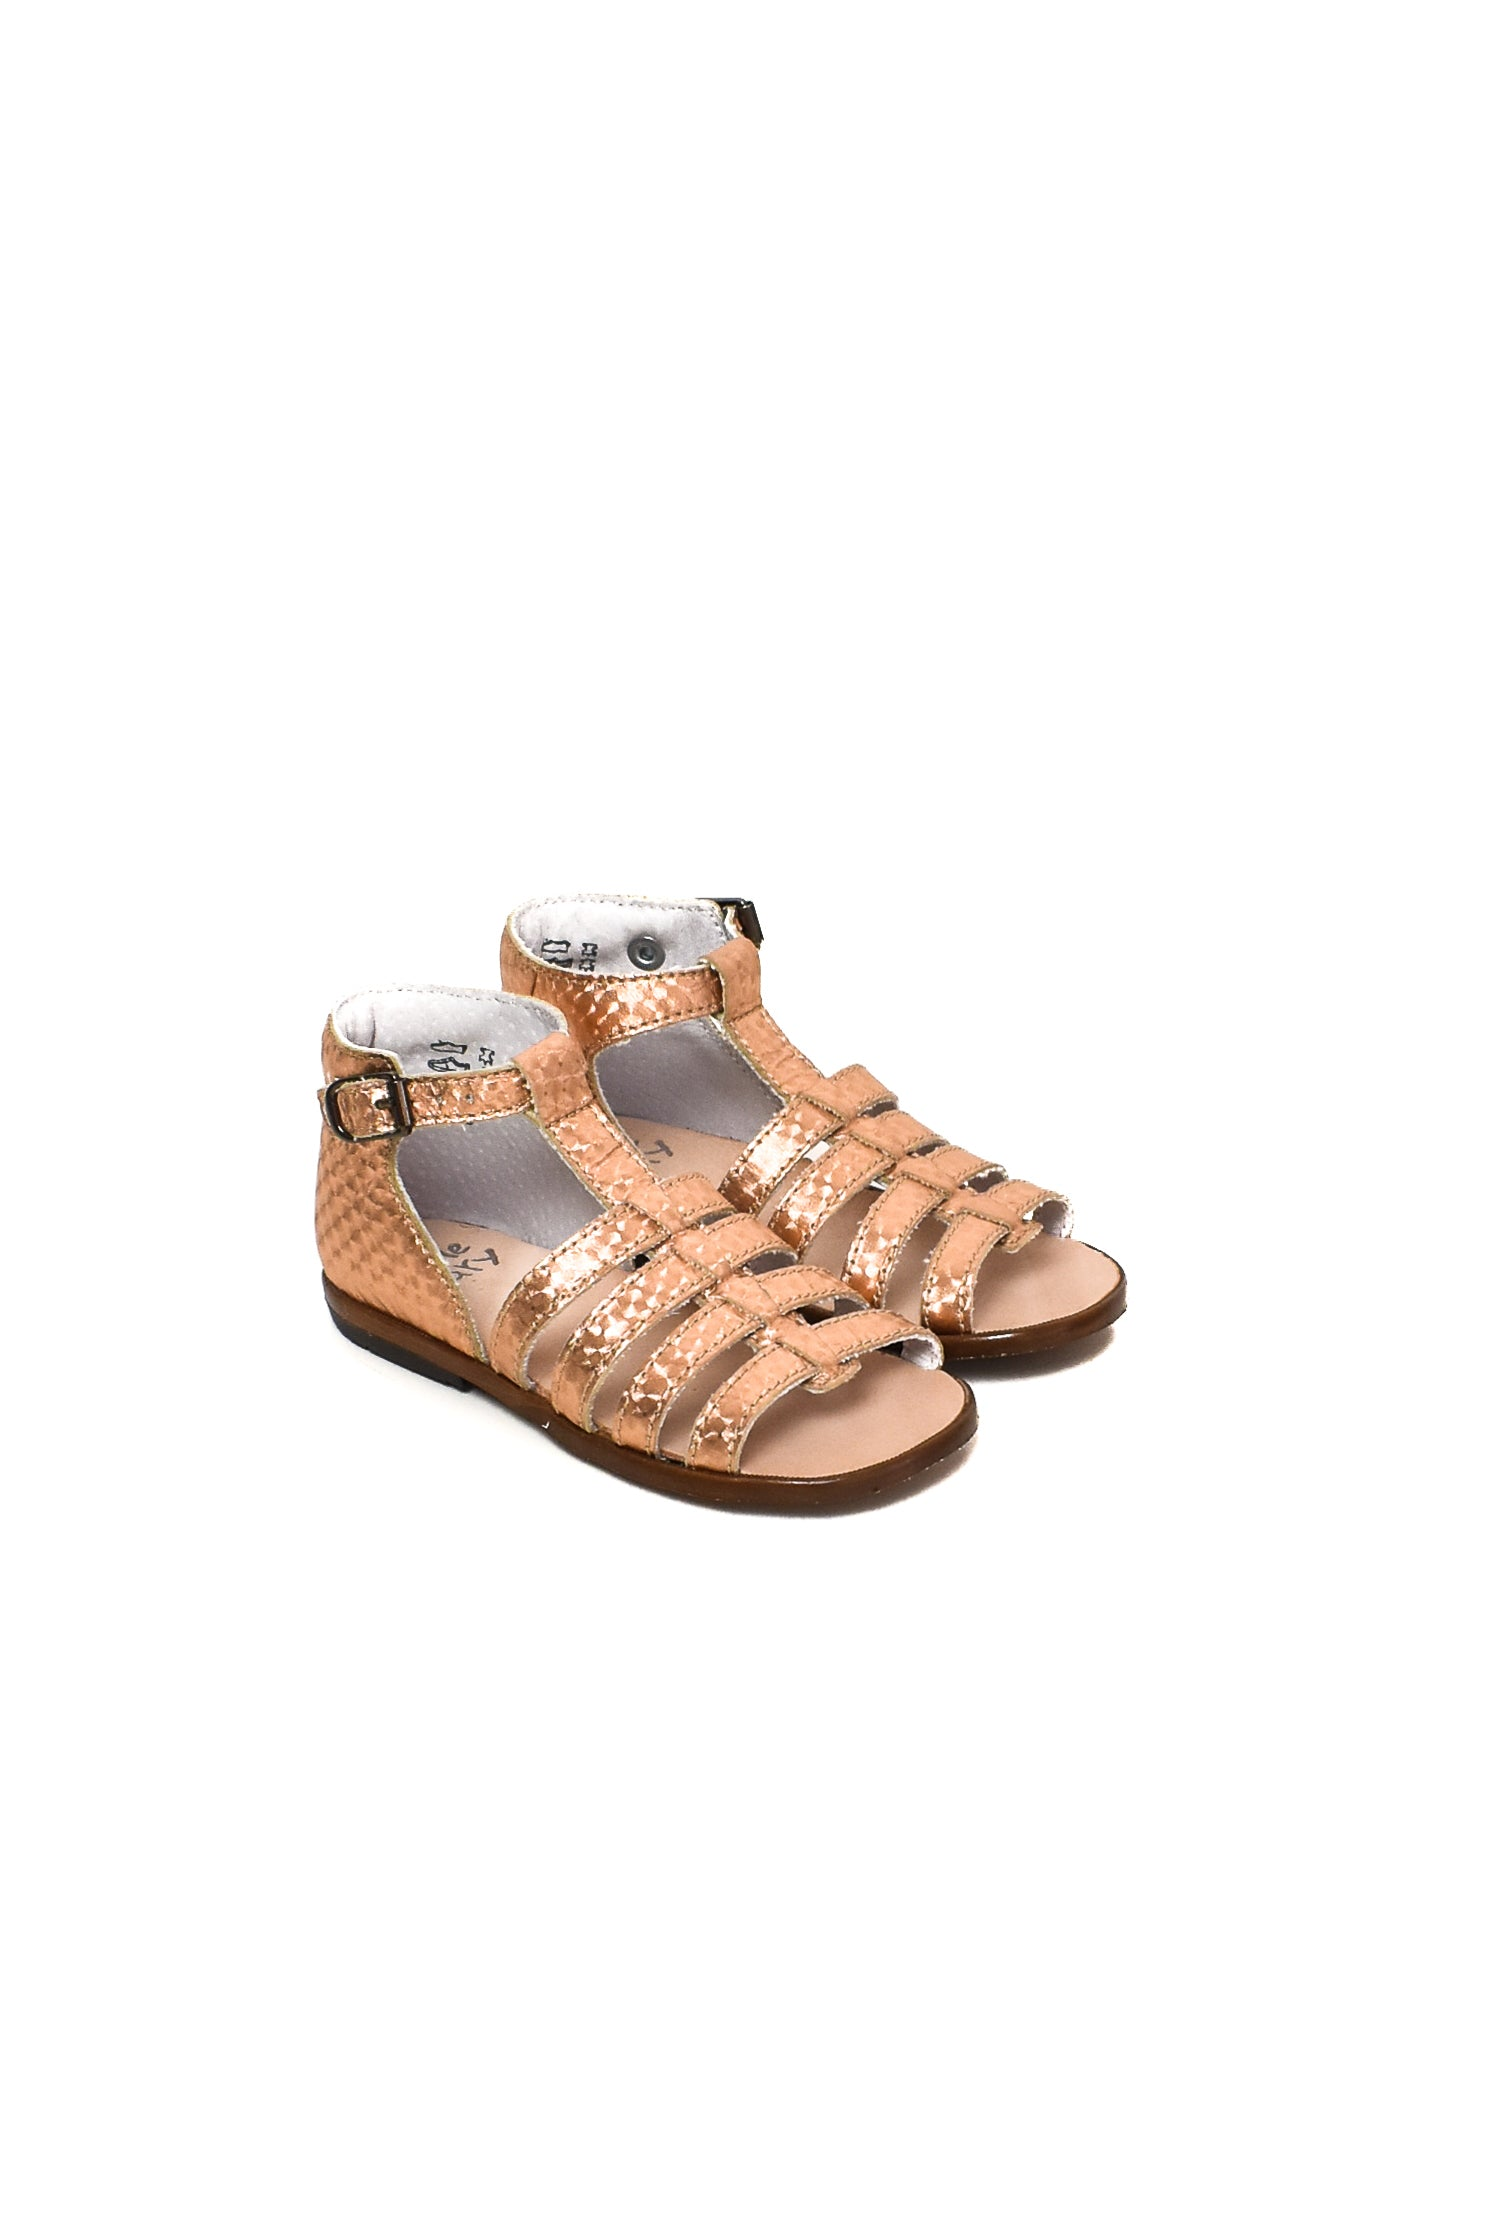 10007869 Little Mary Kids~Sandals 18M-3T (EU 23-25) at Retykle